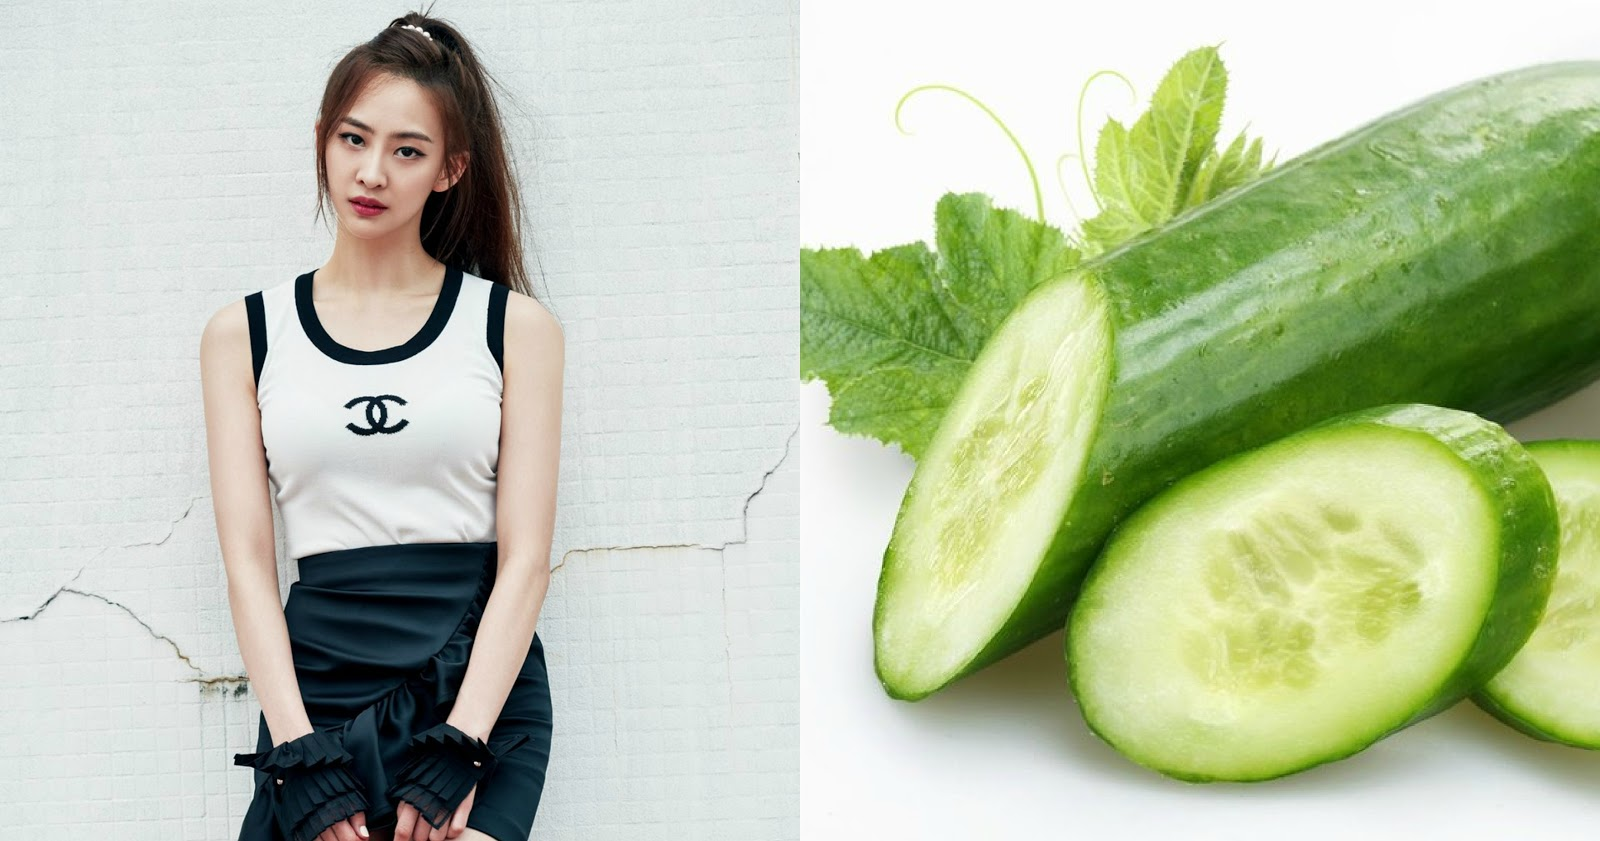 11 Idols Who Attempted Dangerous Starvation Diets